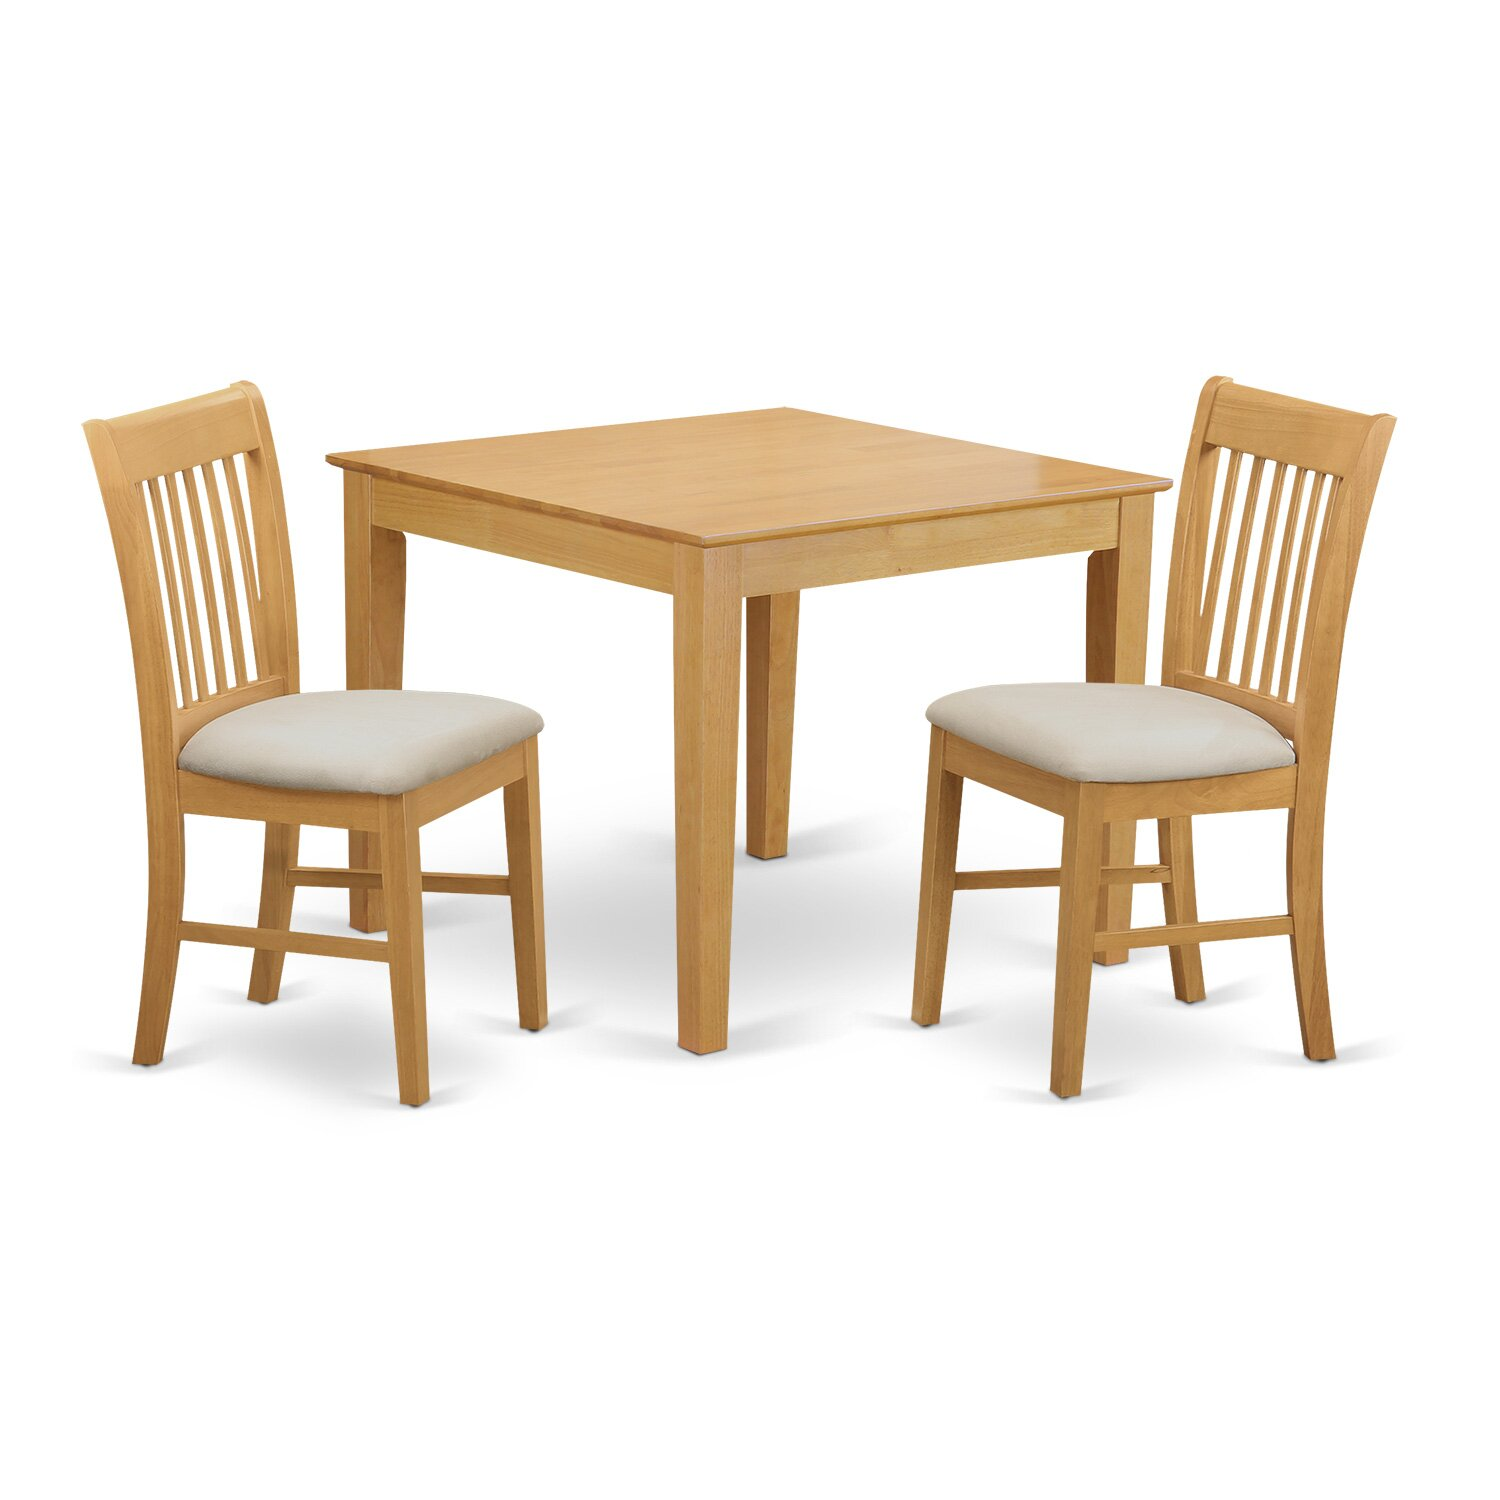 East west oxford 3 piece dining set reviews wayfair for Kitchenette sets furniture